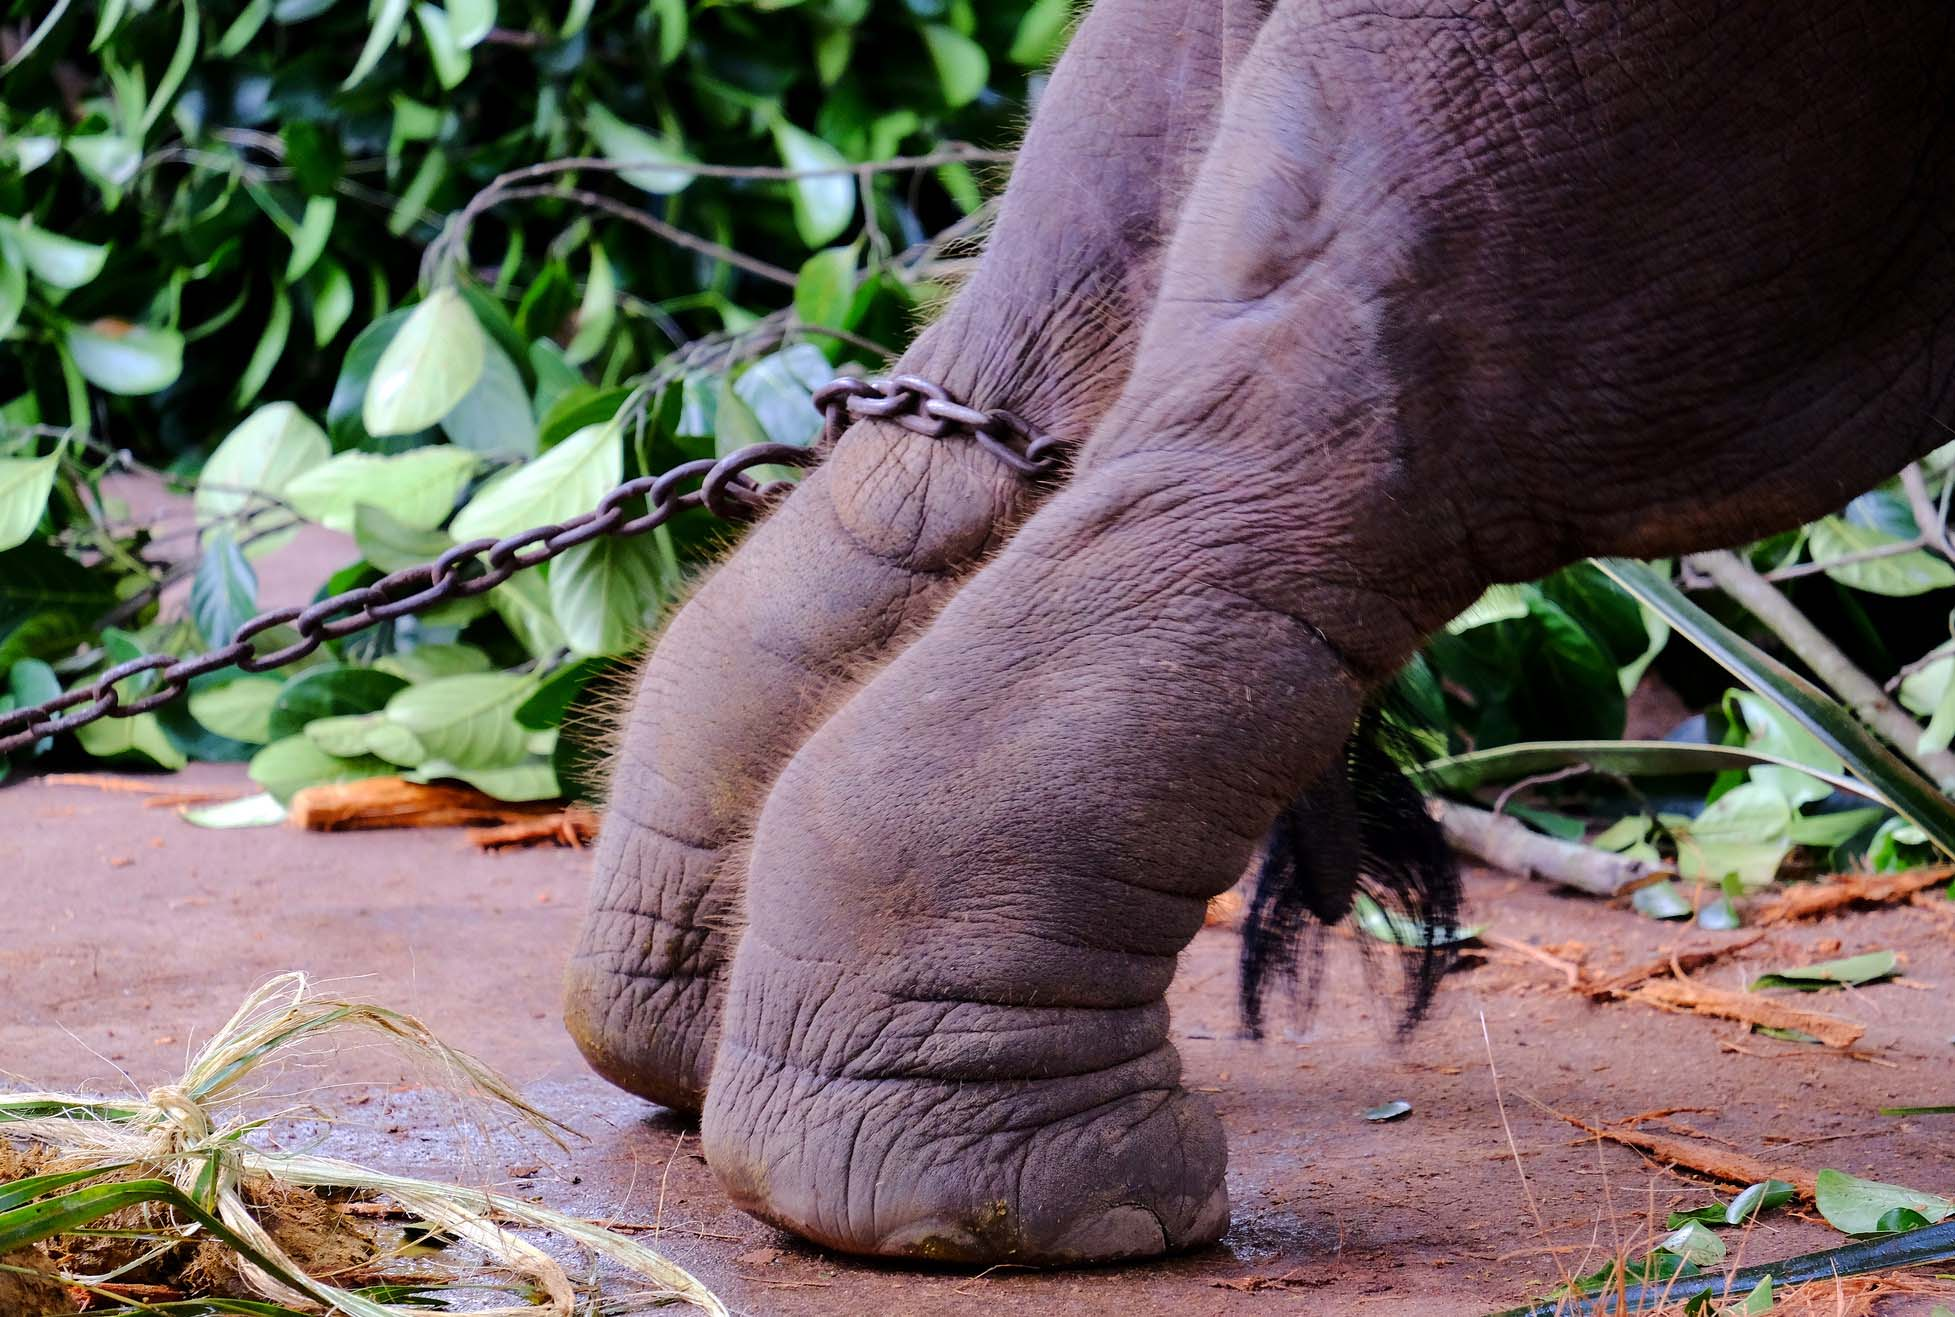 A captive Asian elephant strains against its chains. Image by Bruce Thomson / flickr